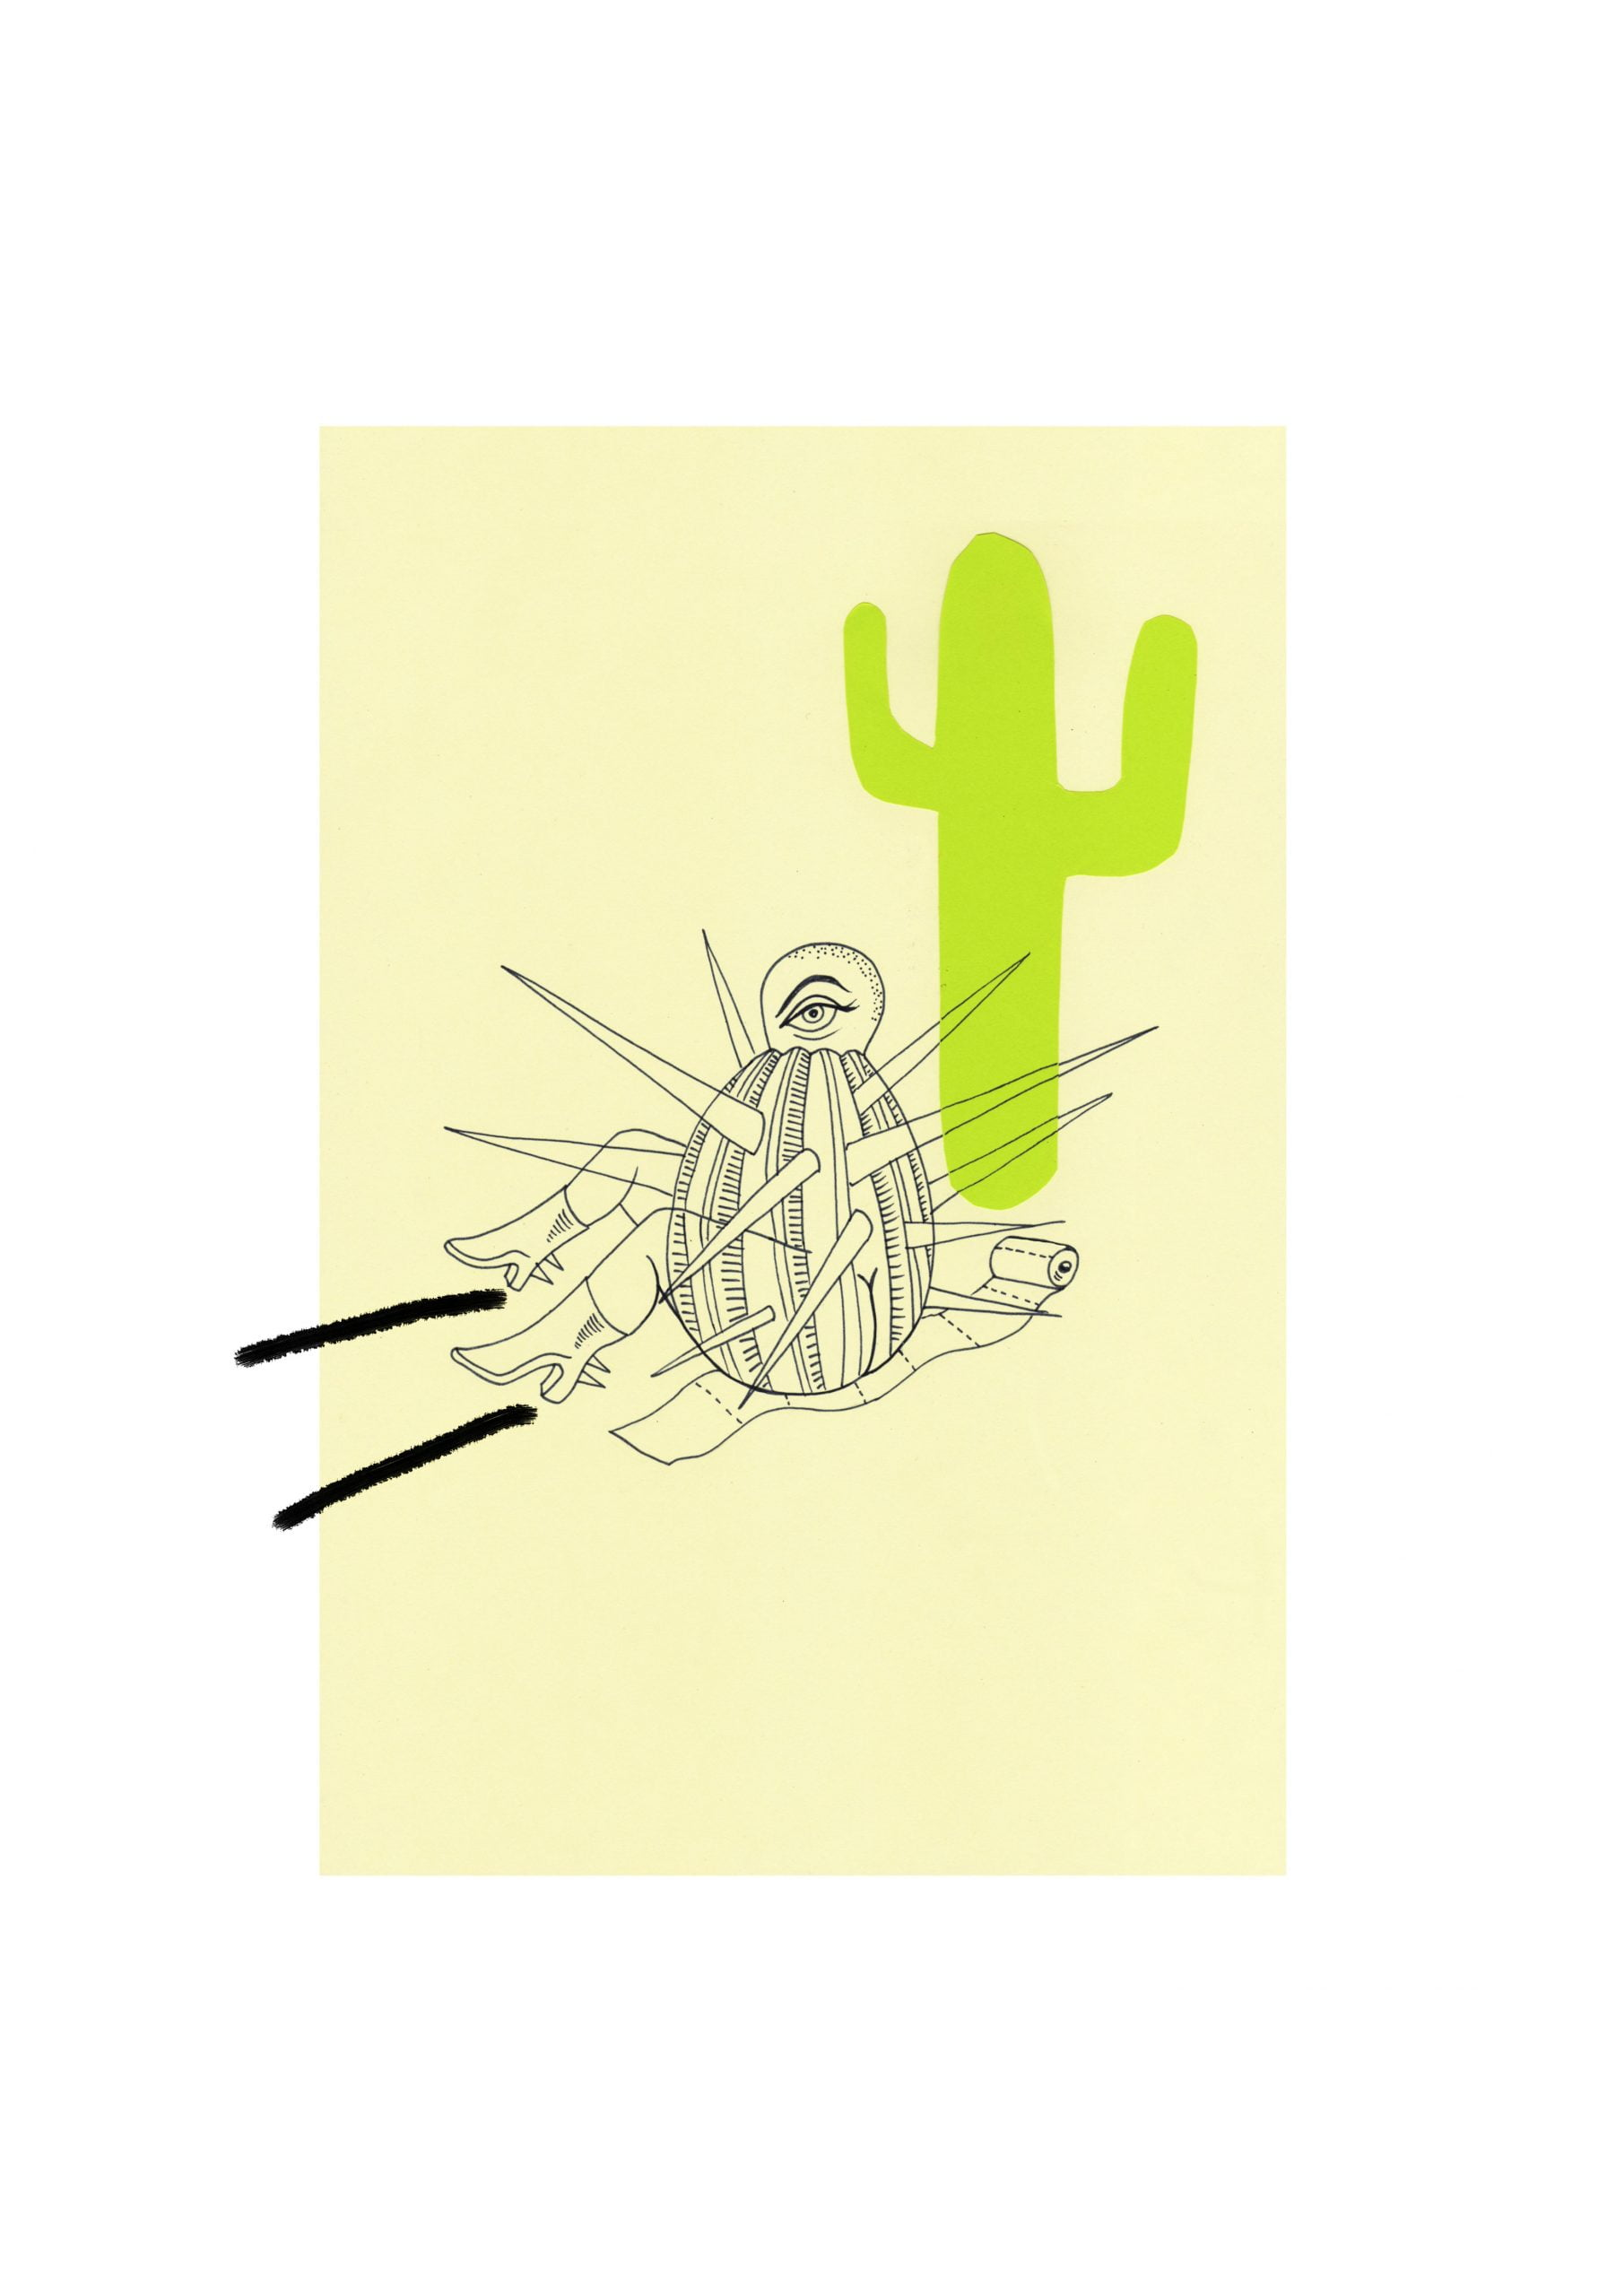 A portrait drawing in a yellow rectangle of a spiked round object with an eye and legs is sitting on an unravelled toilet roll next to a green cactus shape. Two black lines point away from the legs. A white background frames the drawing.